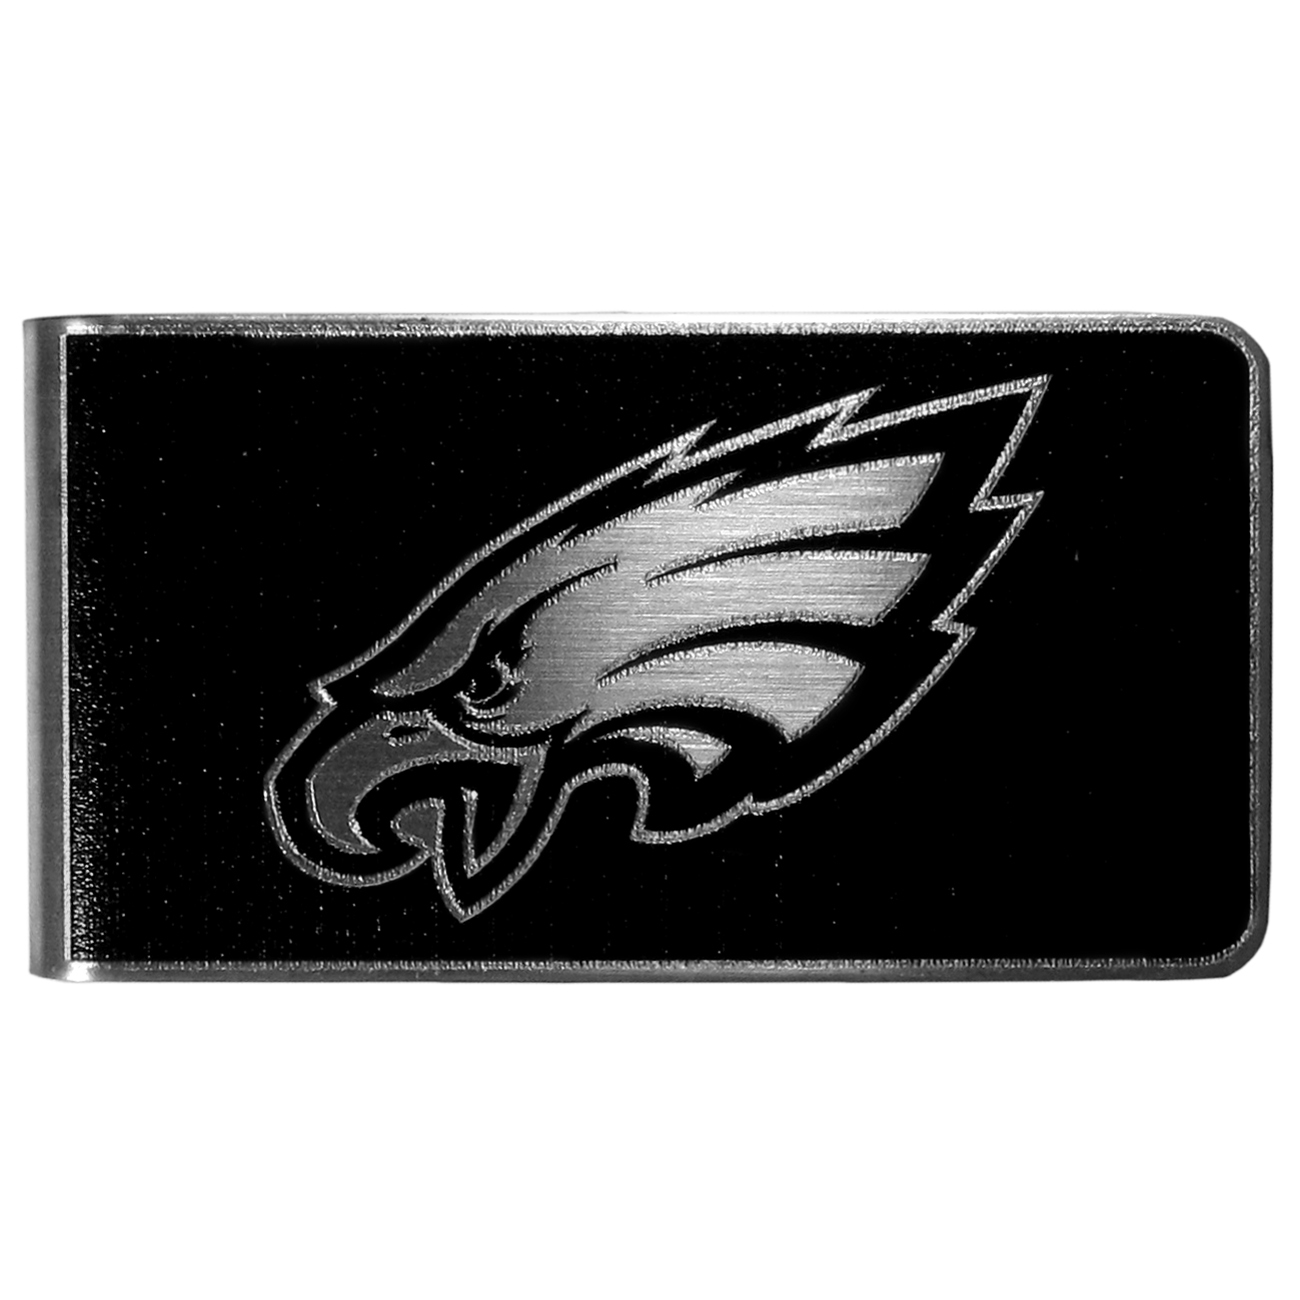 Philadelphia Eagles Black and Steel Money Clip - Our monochromatic steel money clips have a classic style and superior quality. The strong, steel clip has a black overlay of the Philadelphia Eagles logo over the brushed metal finish creating a stylish men's fashion accessory that would make any fan proud.